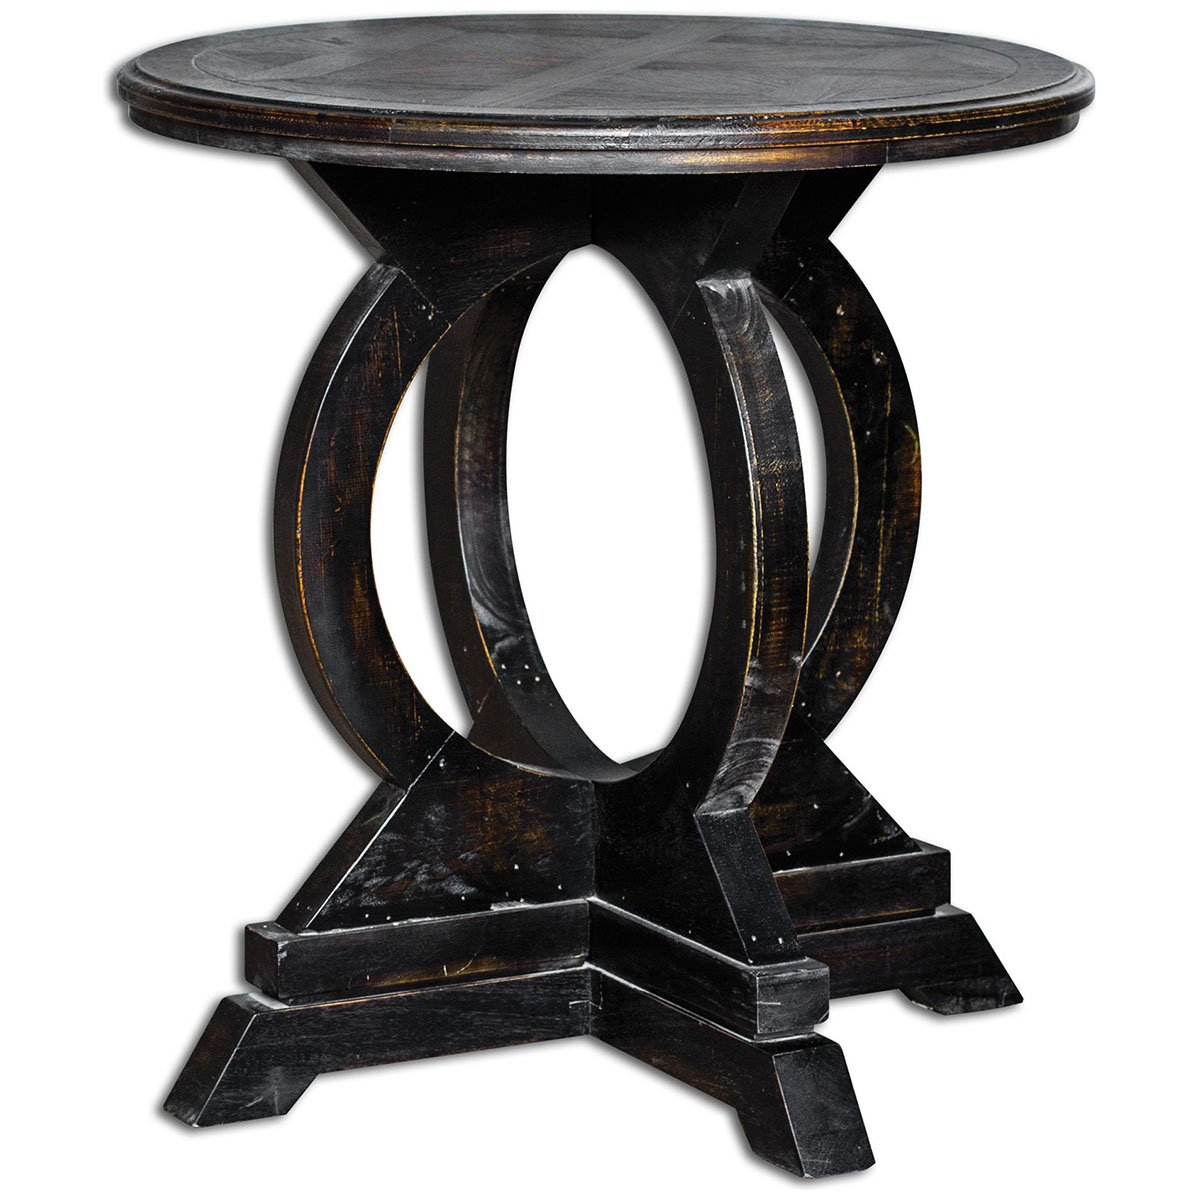 uttermost maiva accent table black kitchen dining tables tory burch cuff bracelet antique mirrored bedside nautical themed side wrought iron glass lamp with storage wood